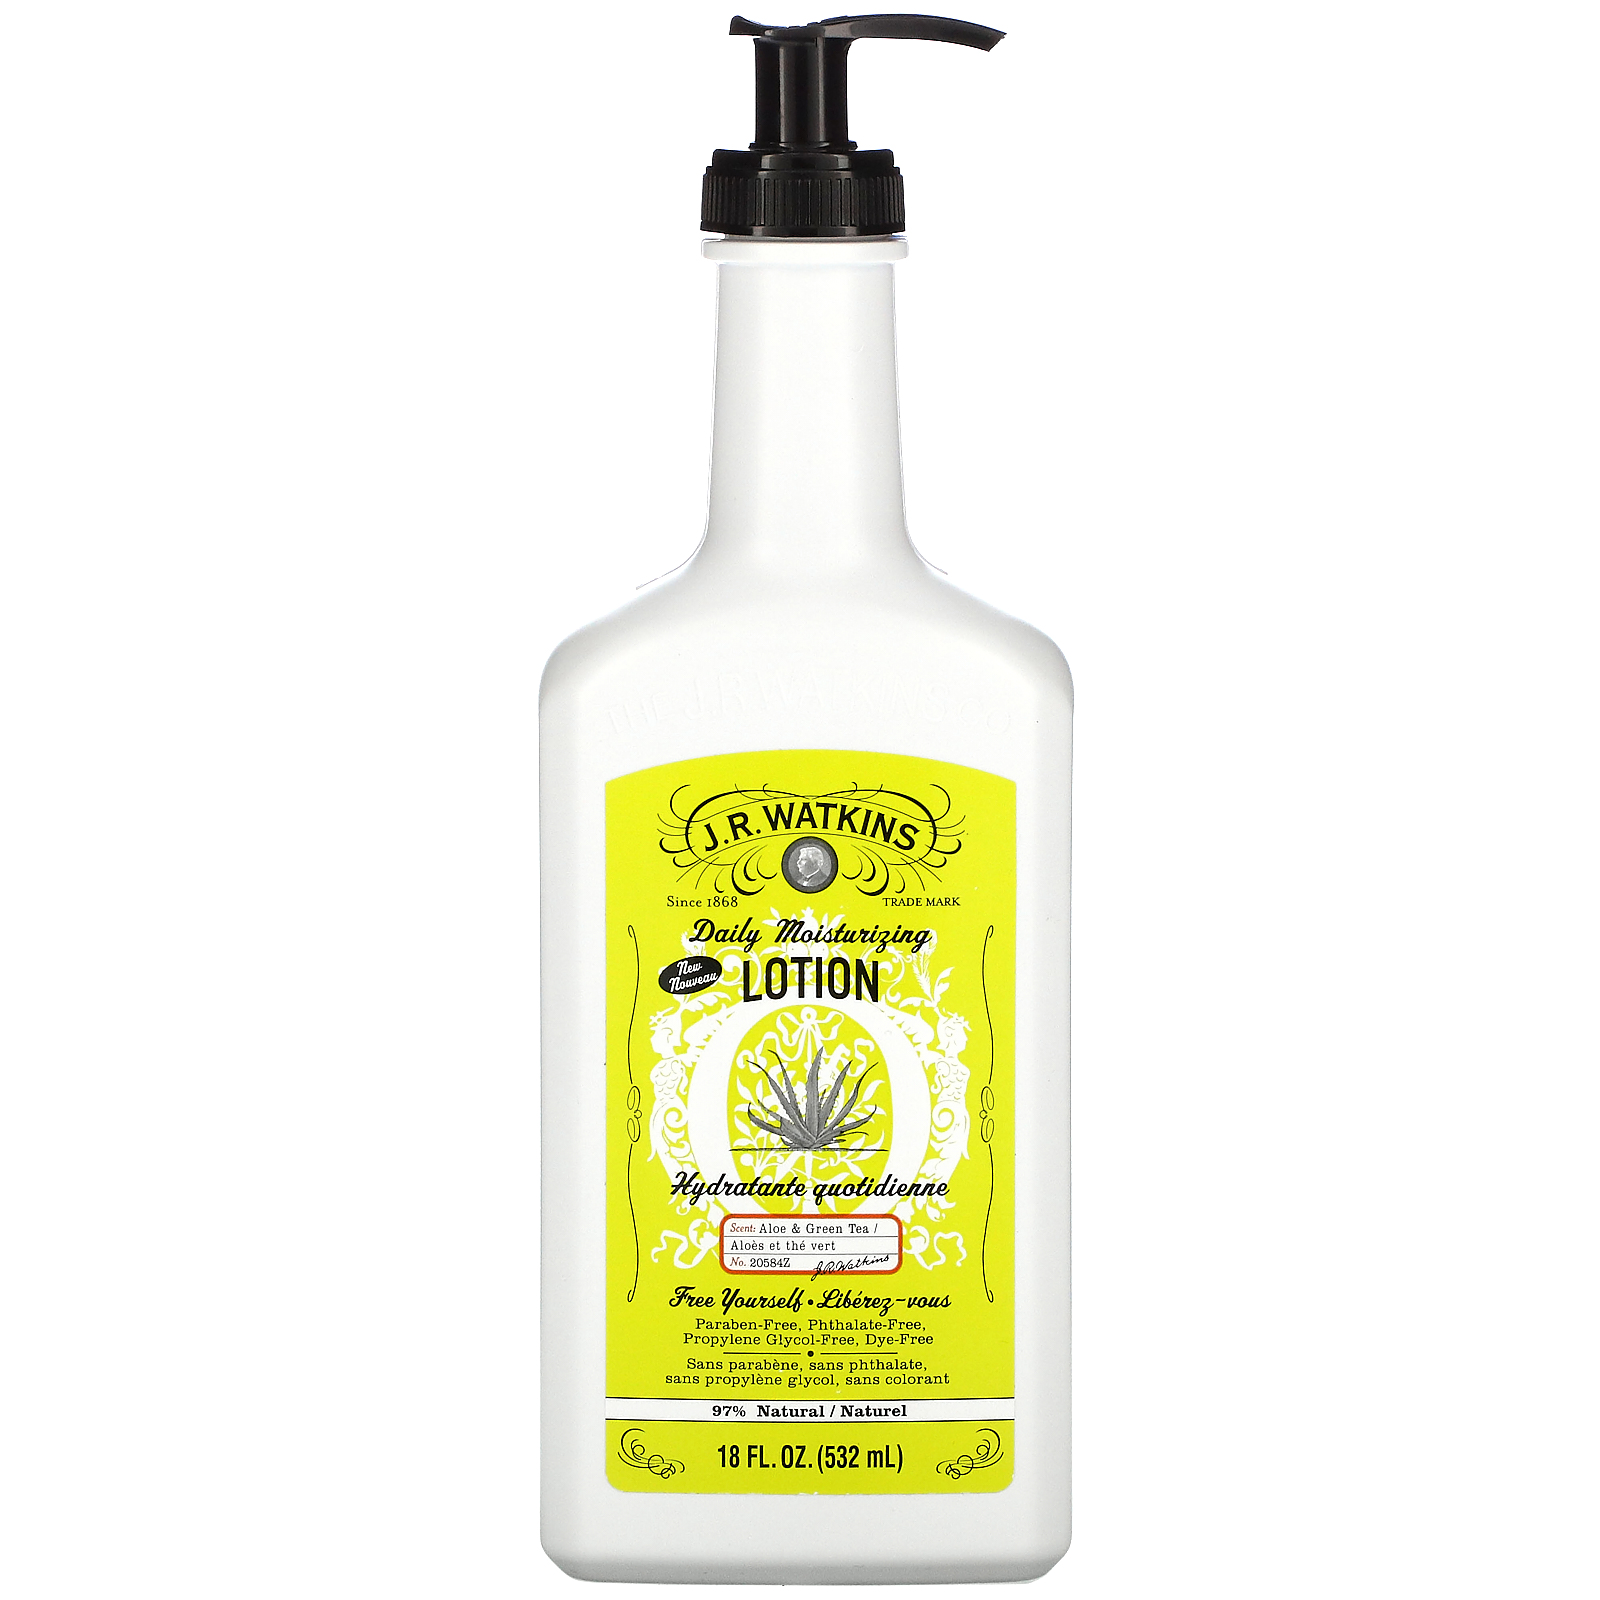 J R Watkins, Daily Moisturizing Lotion, Aloe & Green Tea, 18 fl oz (532 ml)